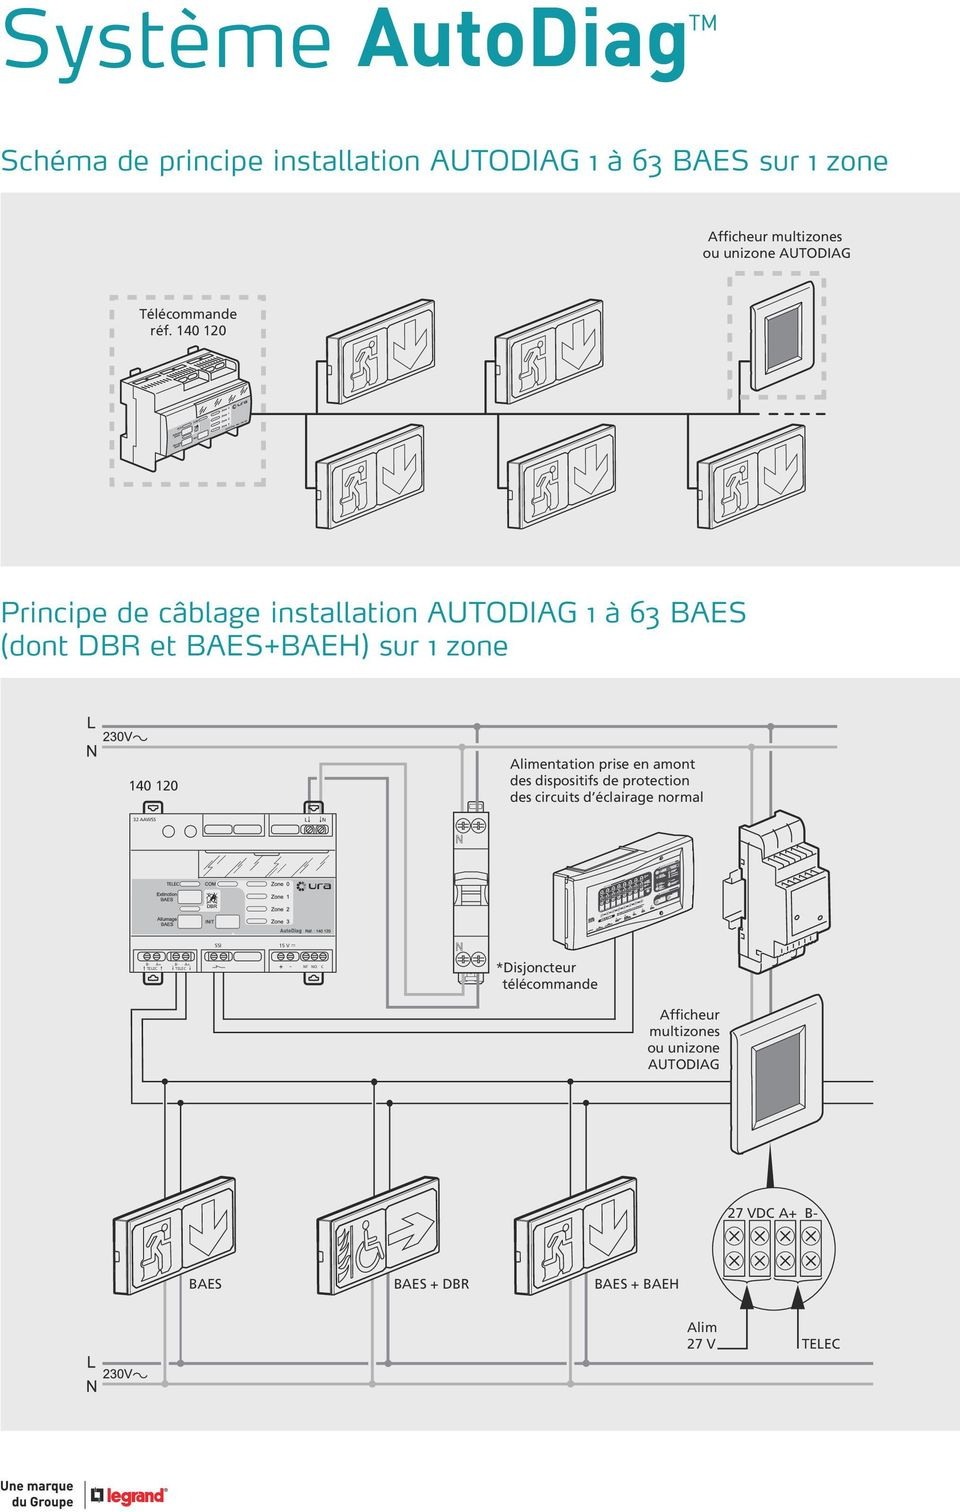 prise en amont des dispositifs de protection des circuits d éclairage normal 32 AAWSS L N SSI 15 V B- A+ B- A+ TELEC TELEC + -